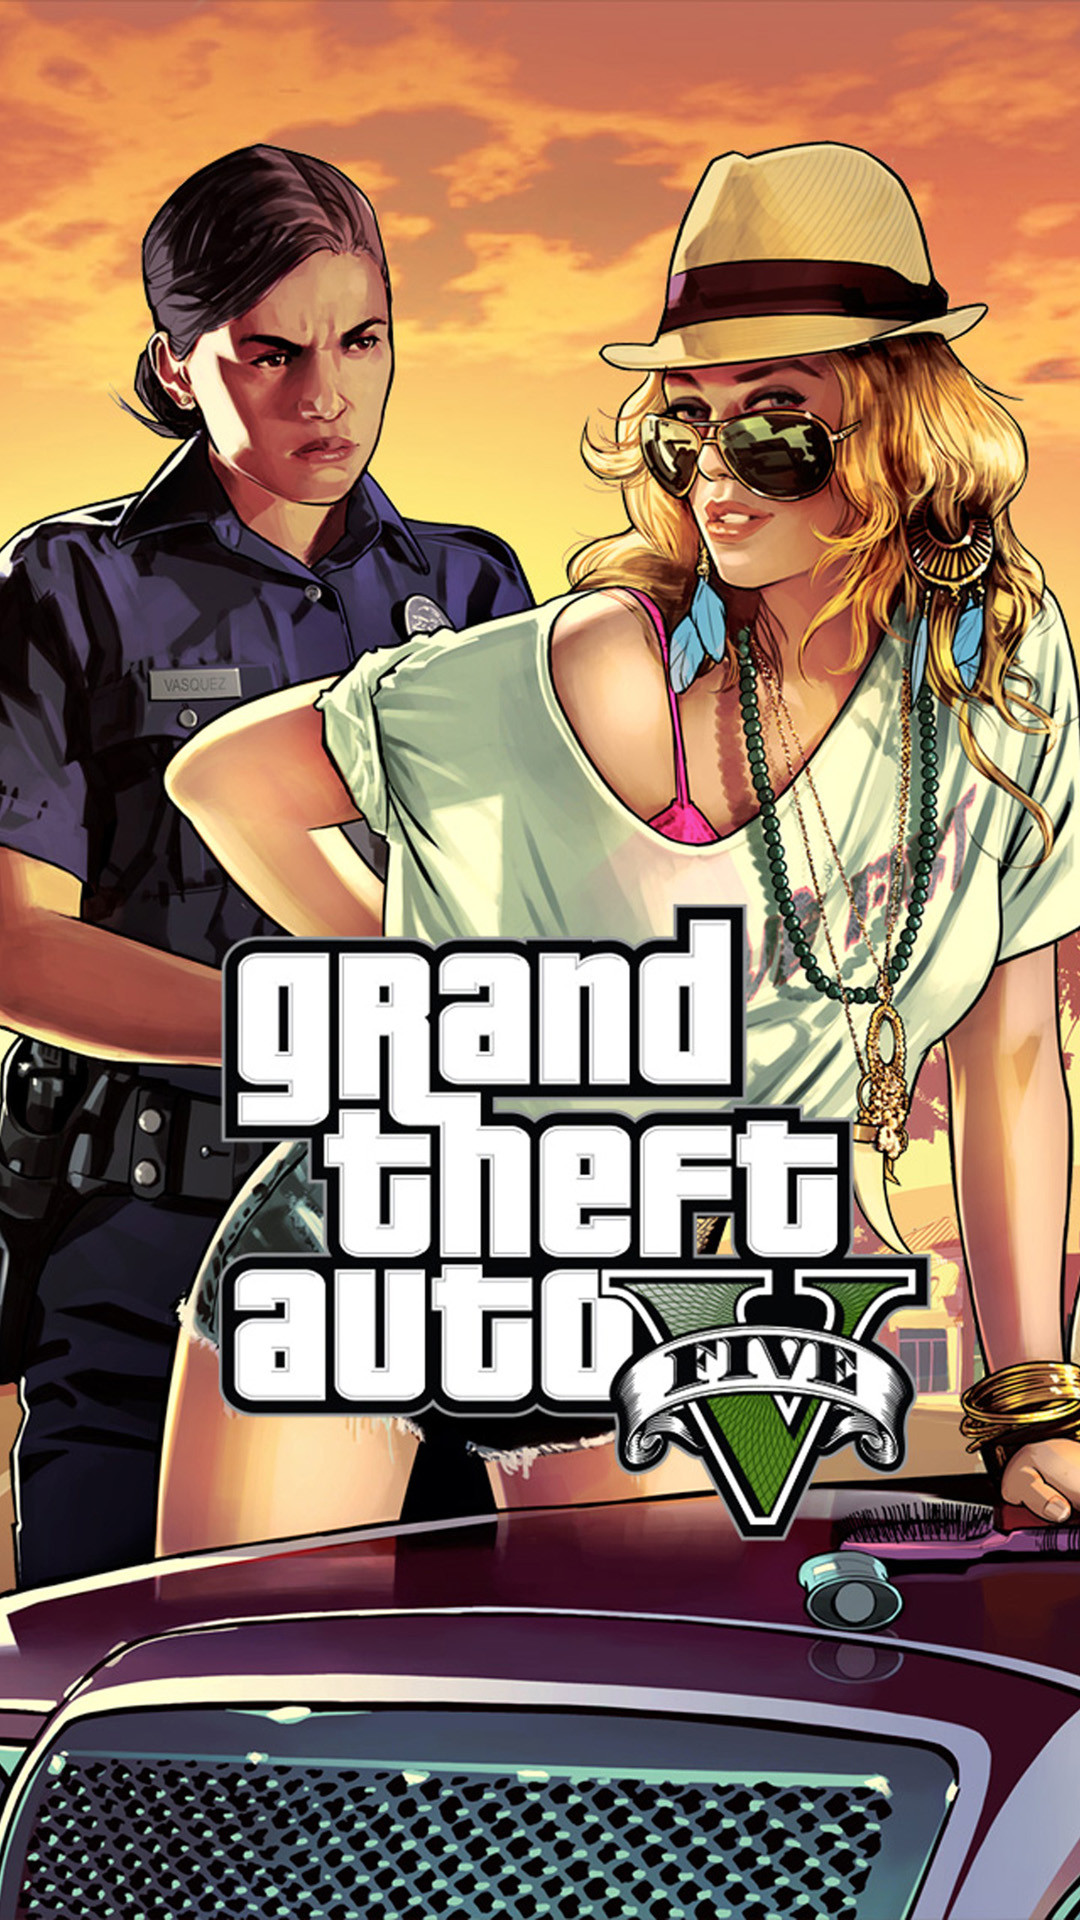 1080x1920 IPhone 6 Plus GTA 5 HD Wallpaper